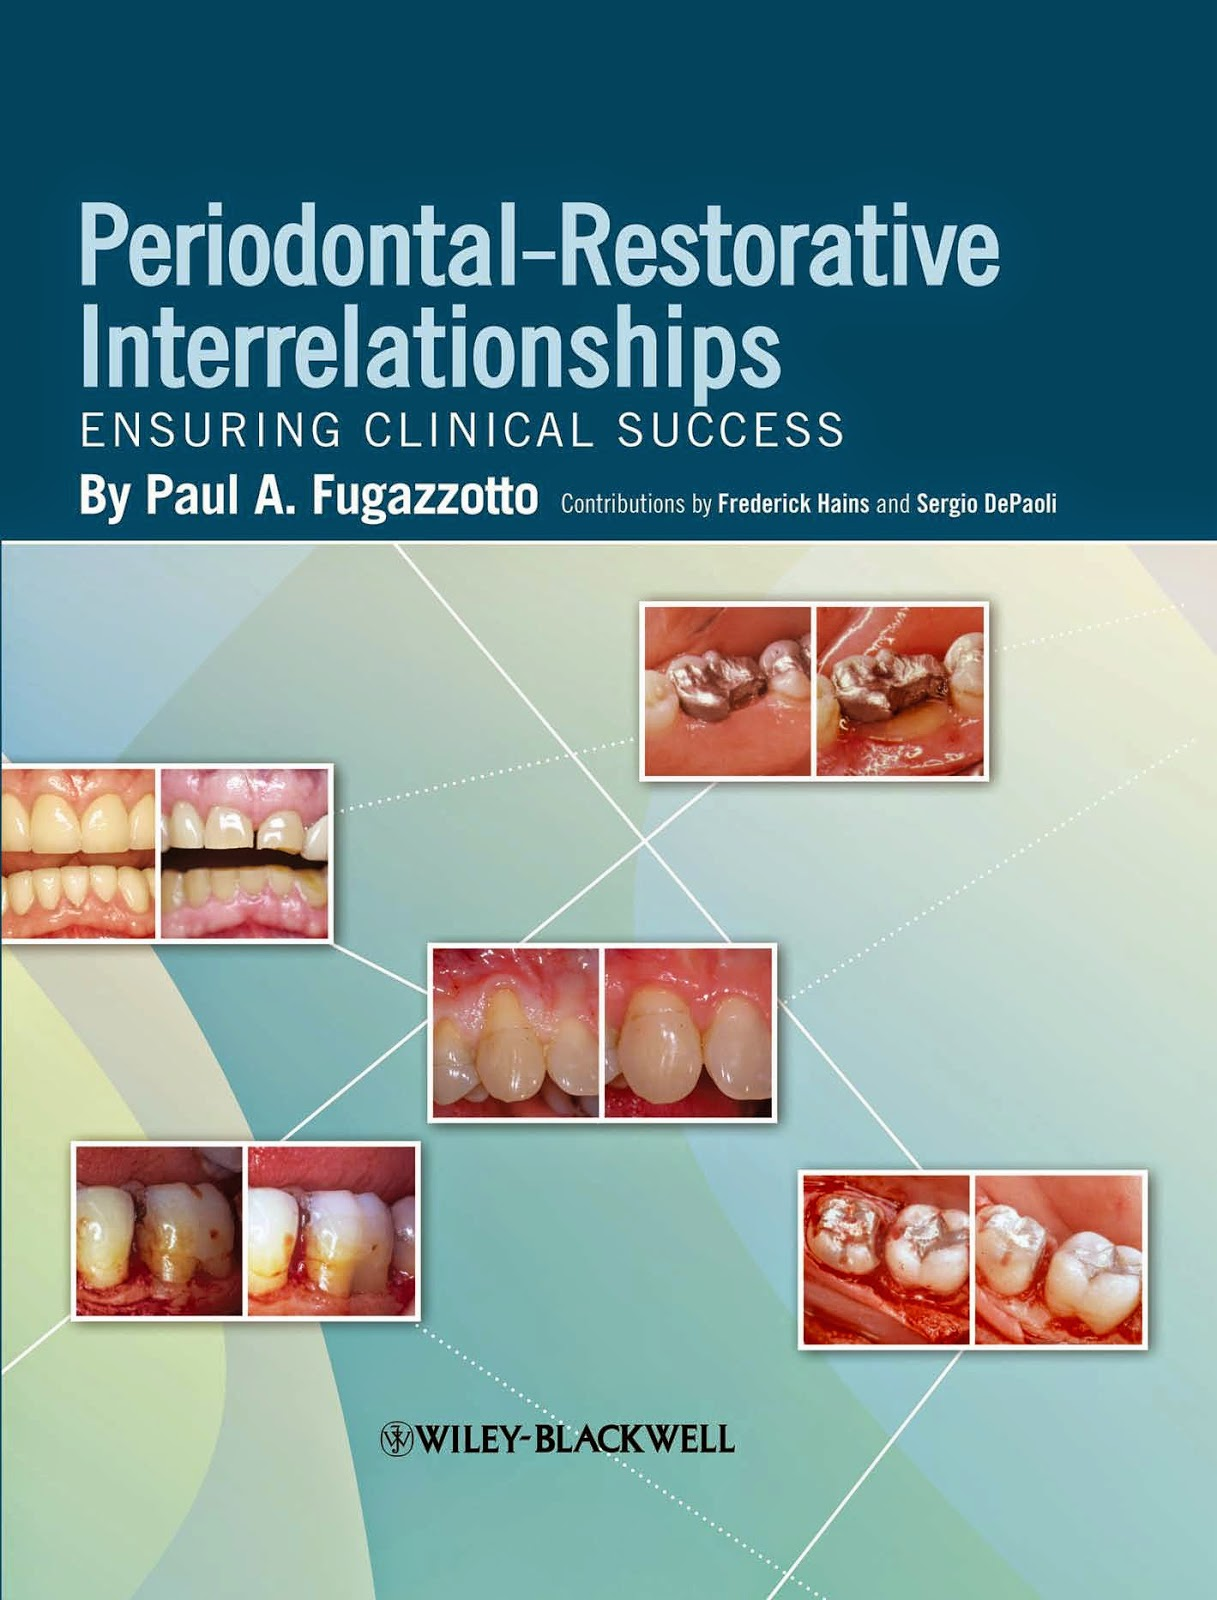 Periodontal-Restorative Interrelationships: Ensuring Clinical Success -Paul A. Fugazzotto - 1st.ed© 2011